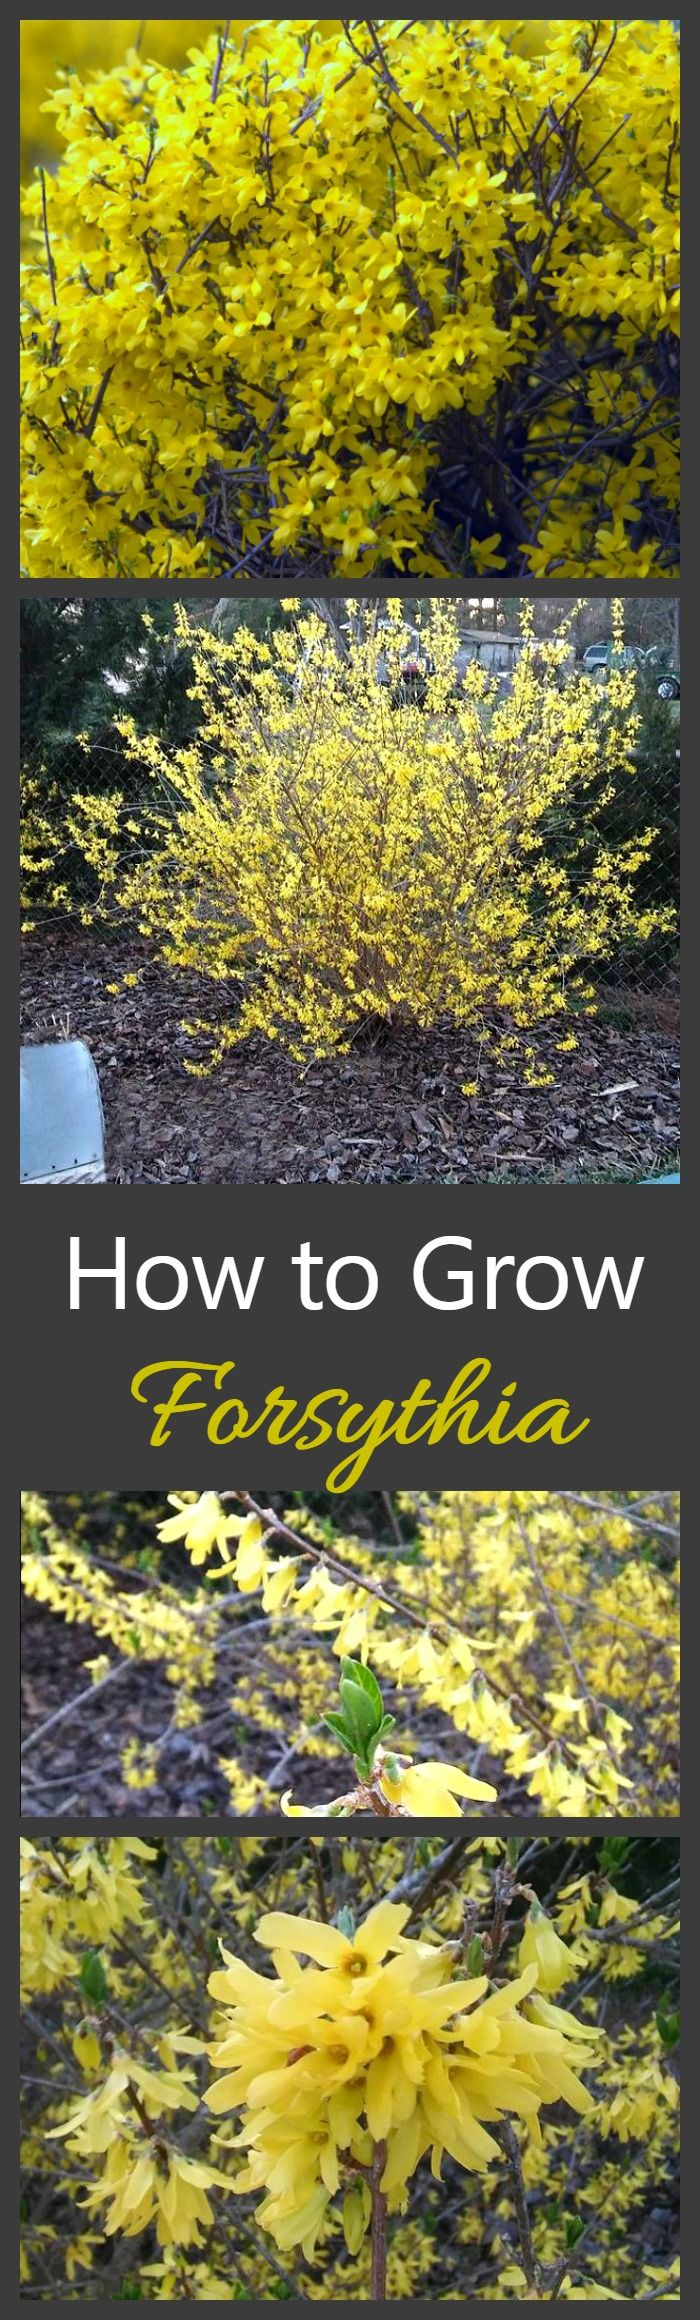 Growing Forsythia bushes is one of the best ways to get a really early show of f...